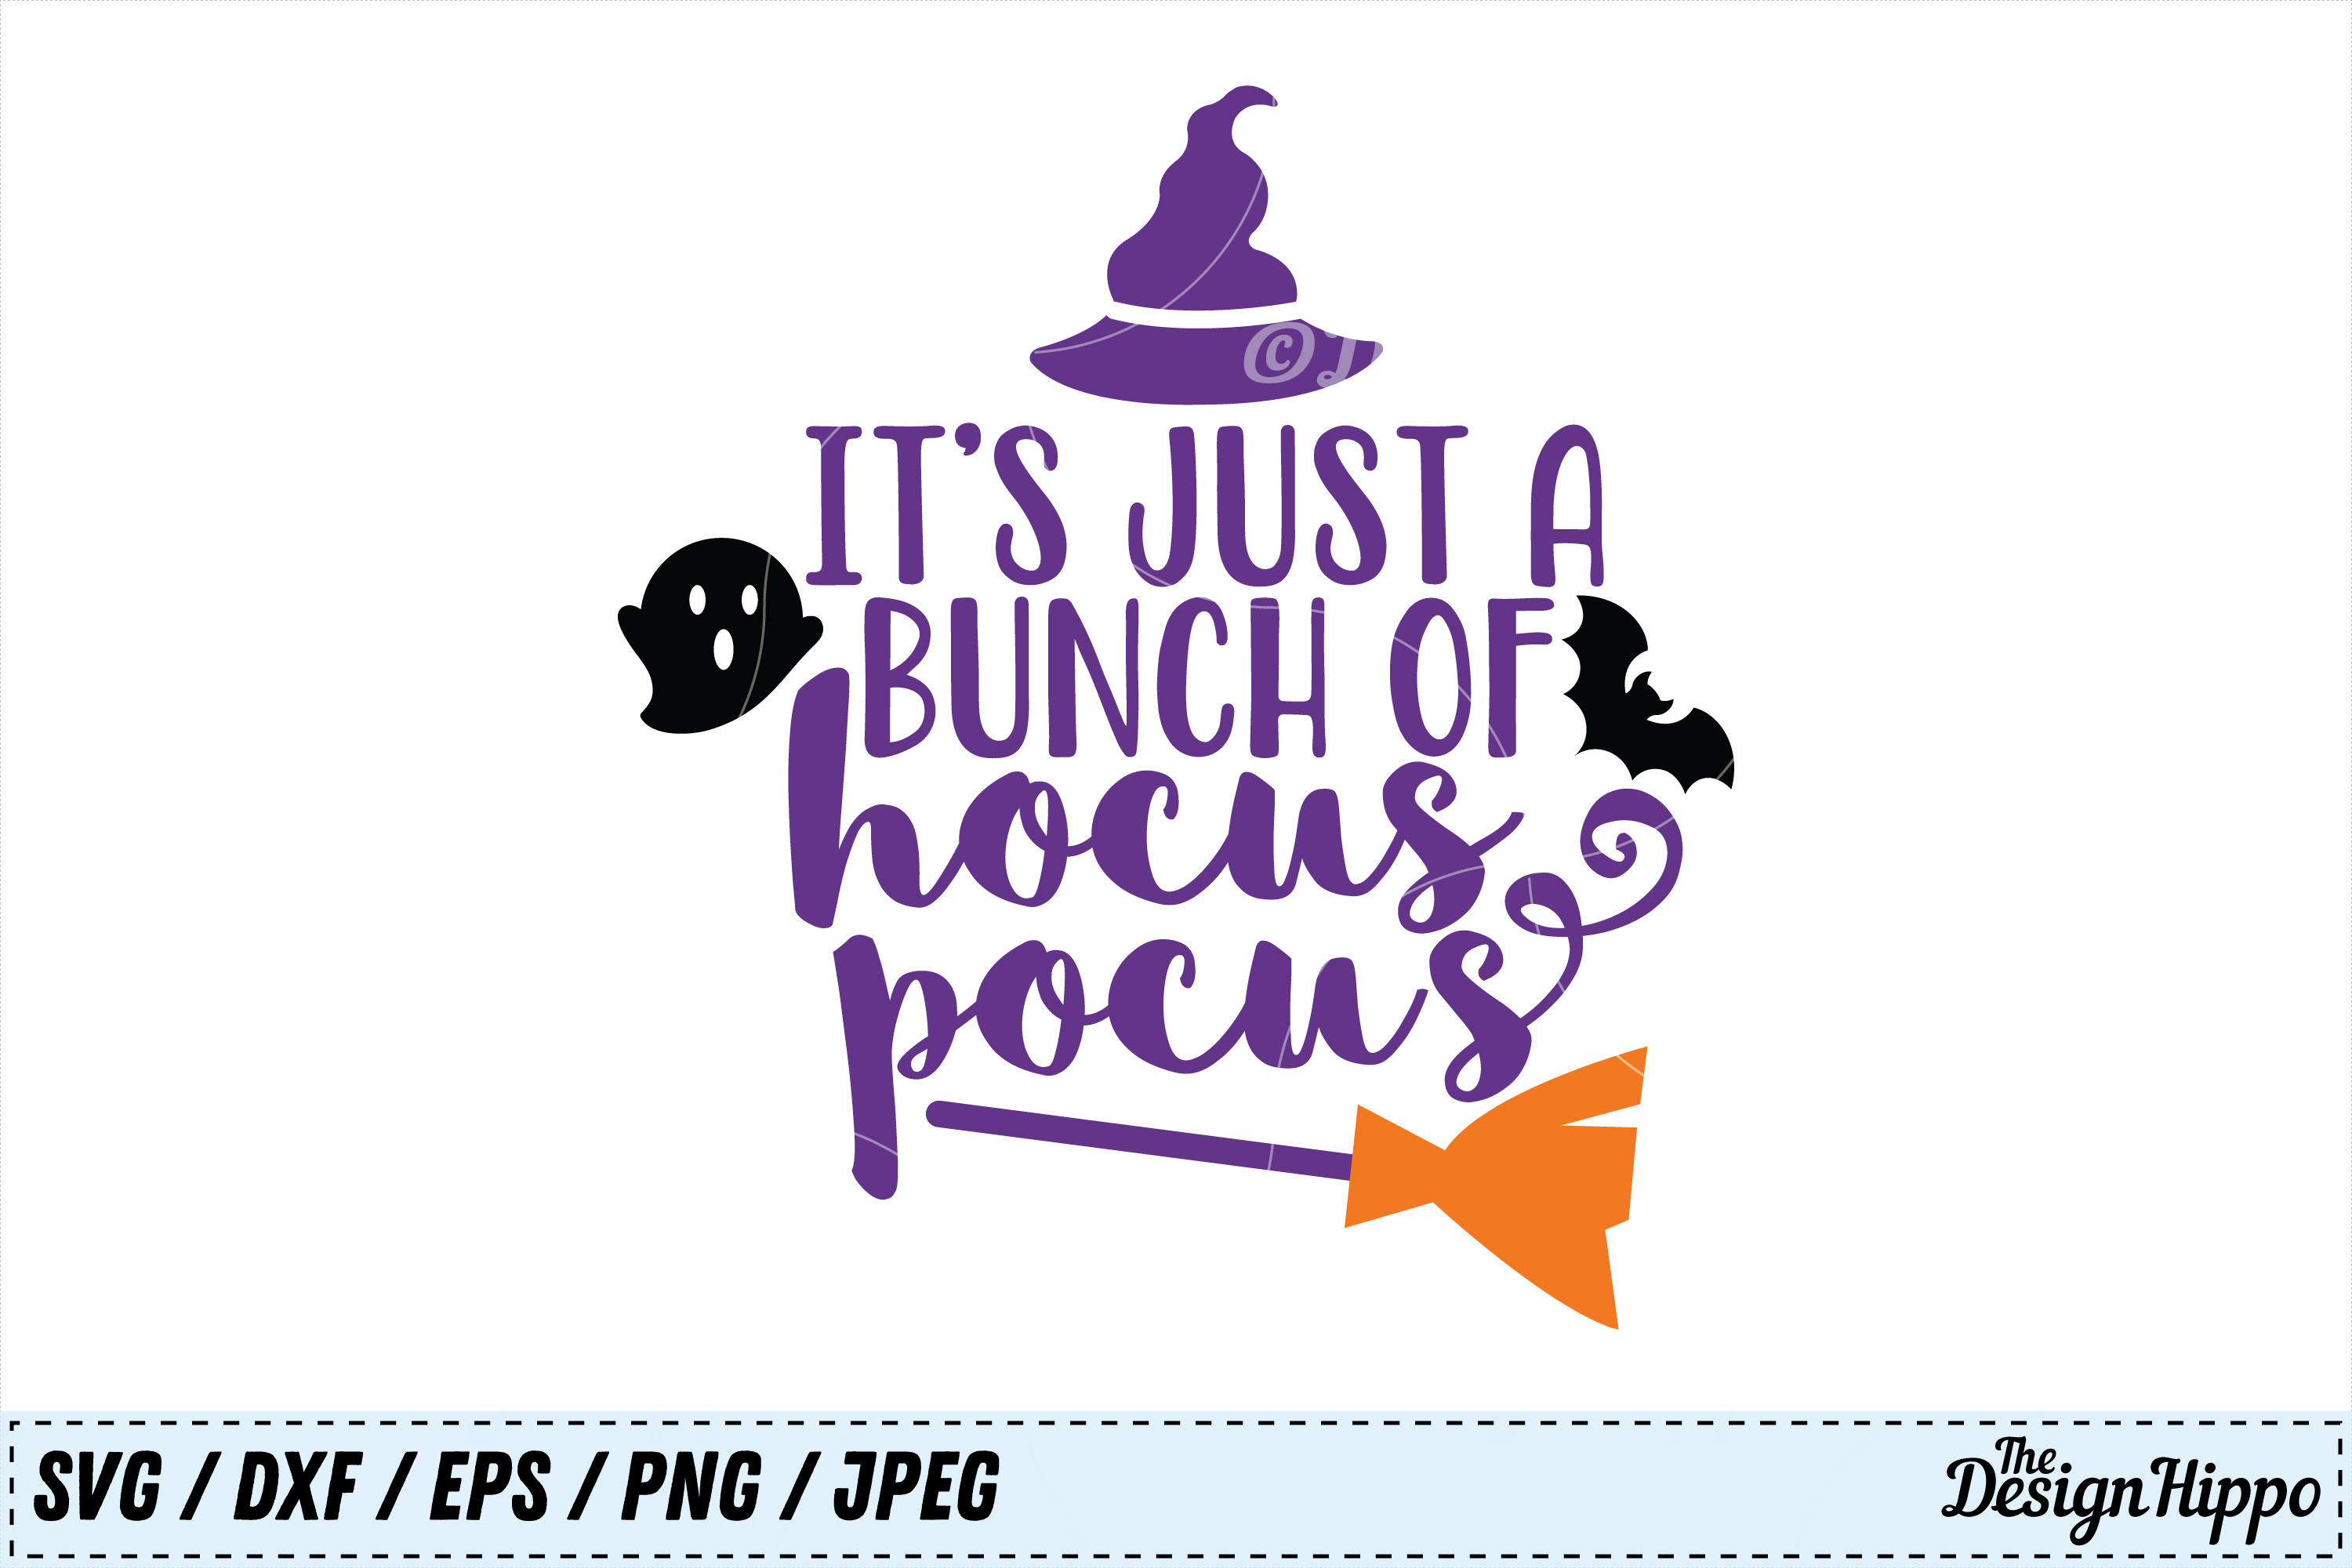 696353d9 Hocus Pocus SVG, Its Just a Bunch of Hocus Pocus SVG DXF PNG example image